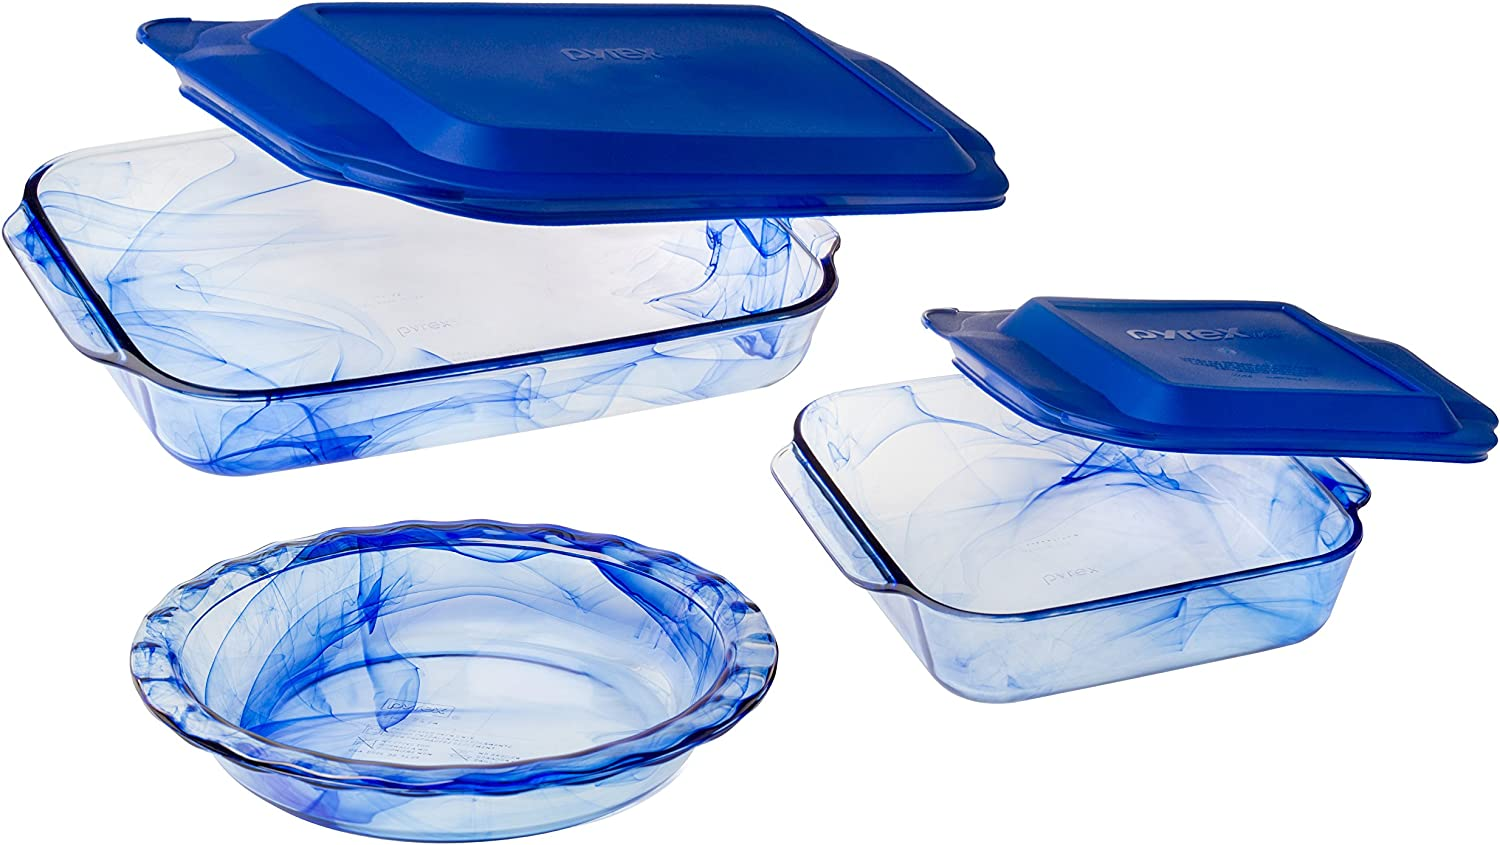 Pyrex 1127972 5 Piece Watercolor Collection Bakeware Set, Blue Lagoon